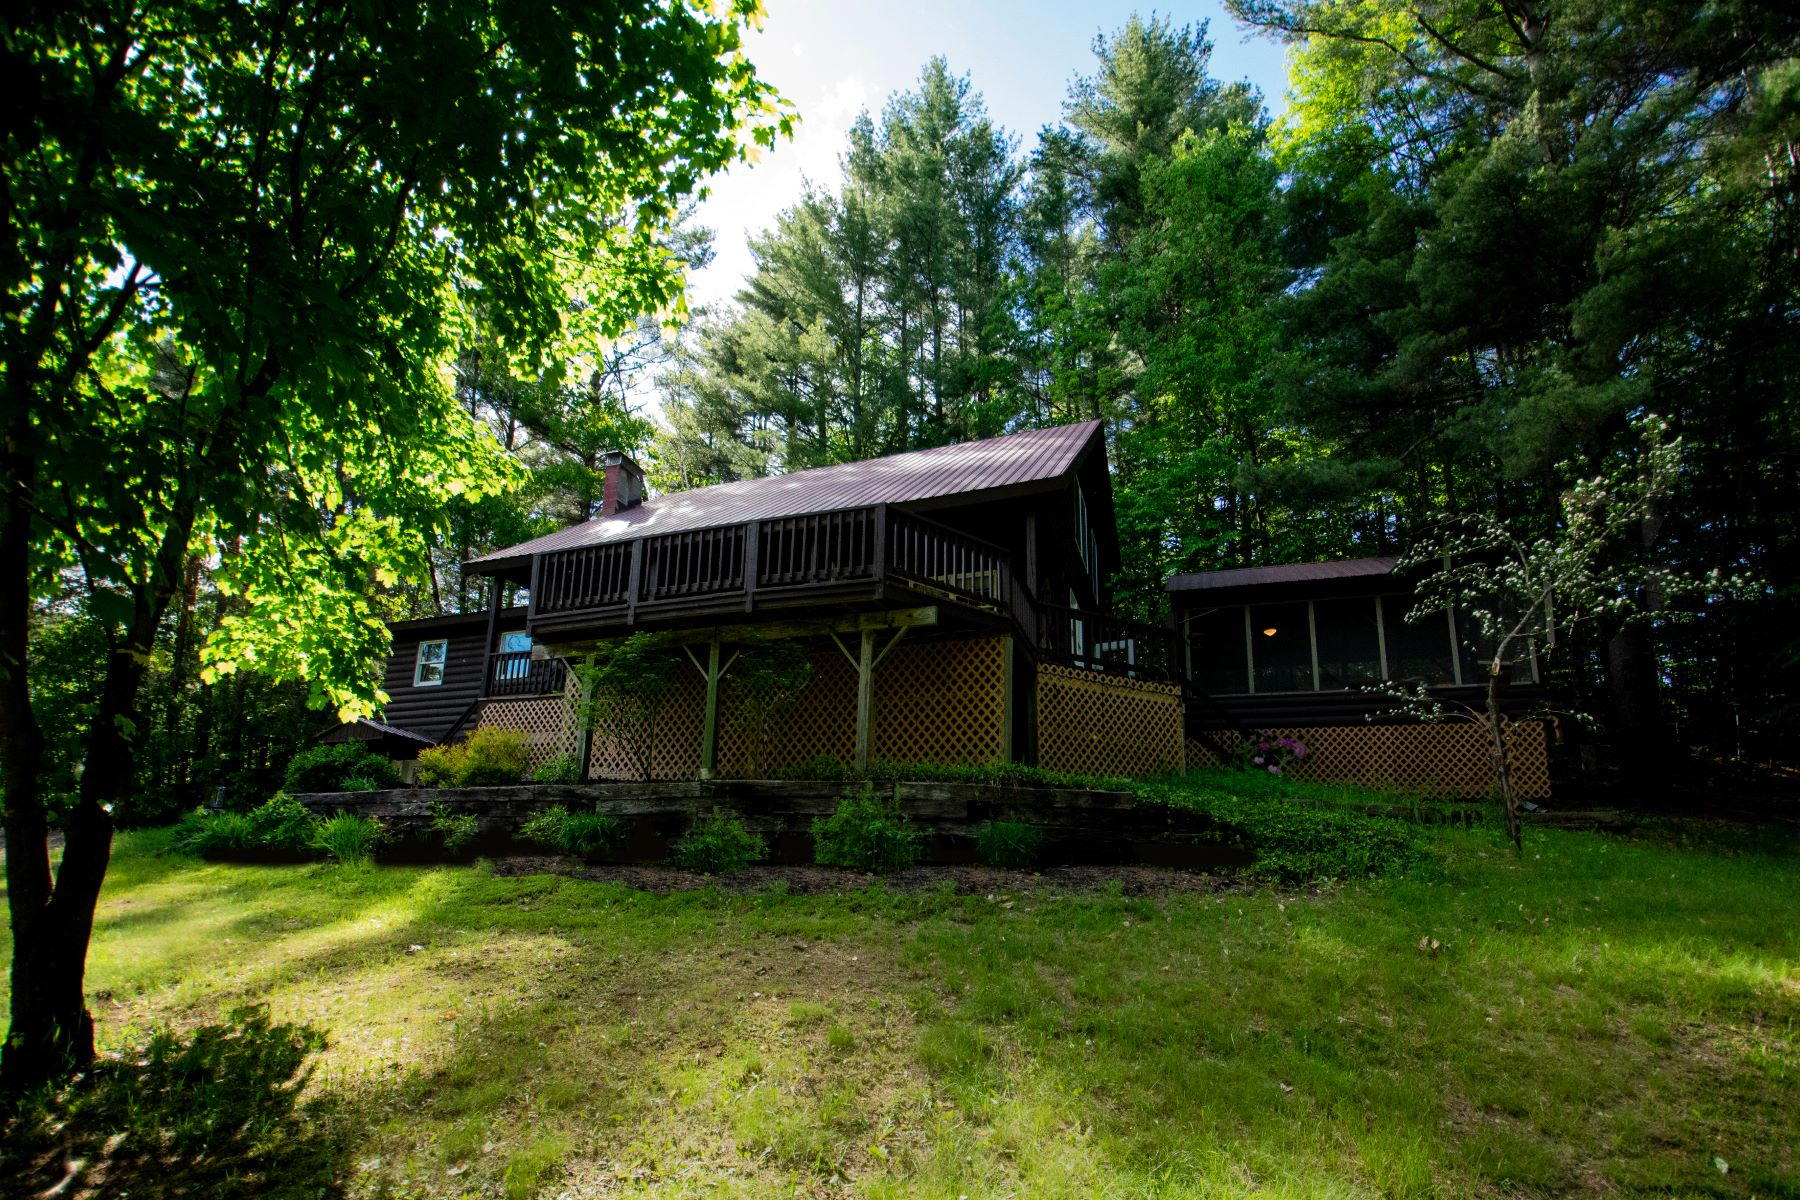 Single Family Homes for Sale at Cozy Log Home Beauty 29 Ordway La North Creek, New York 12853 United States